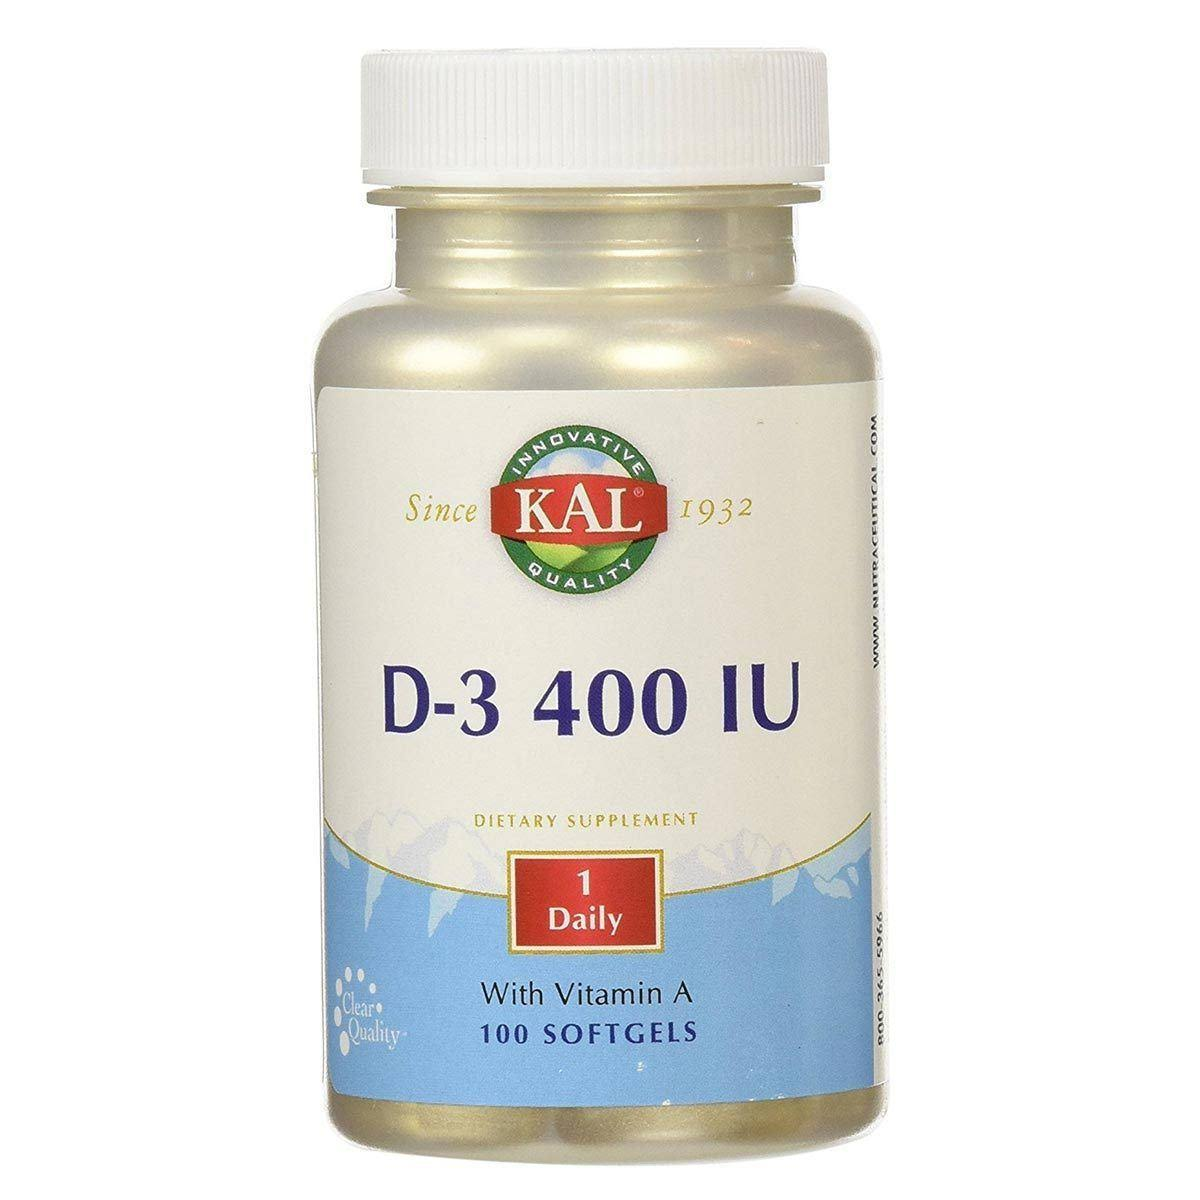 Kal D-3 400 IU Supplement - 100ct